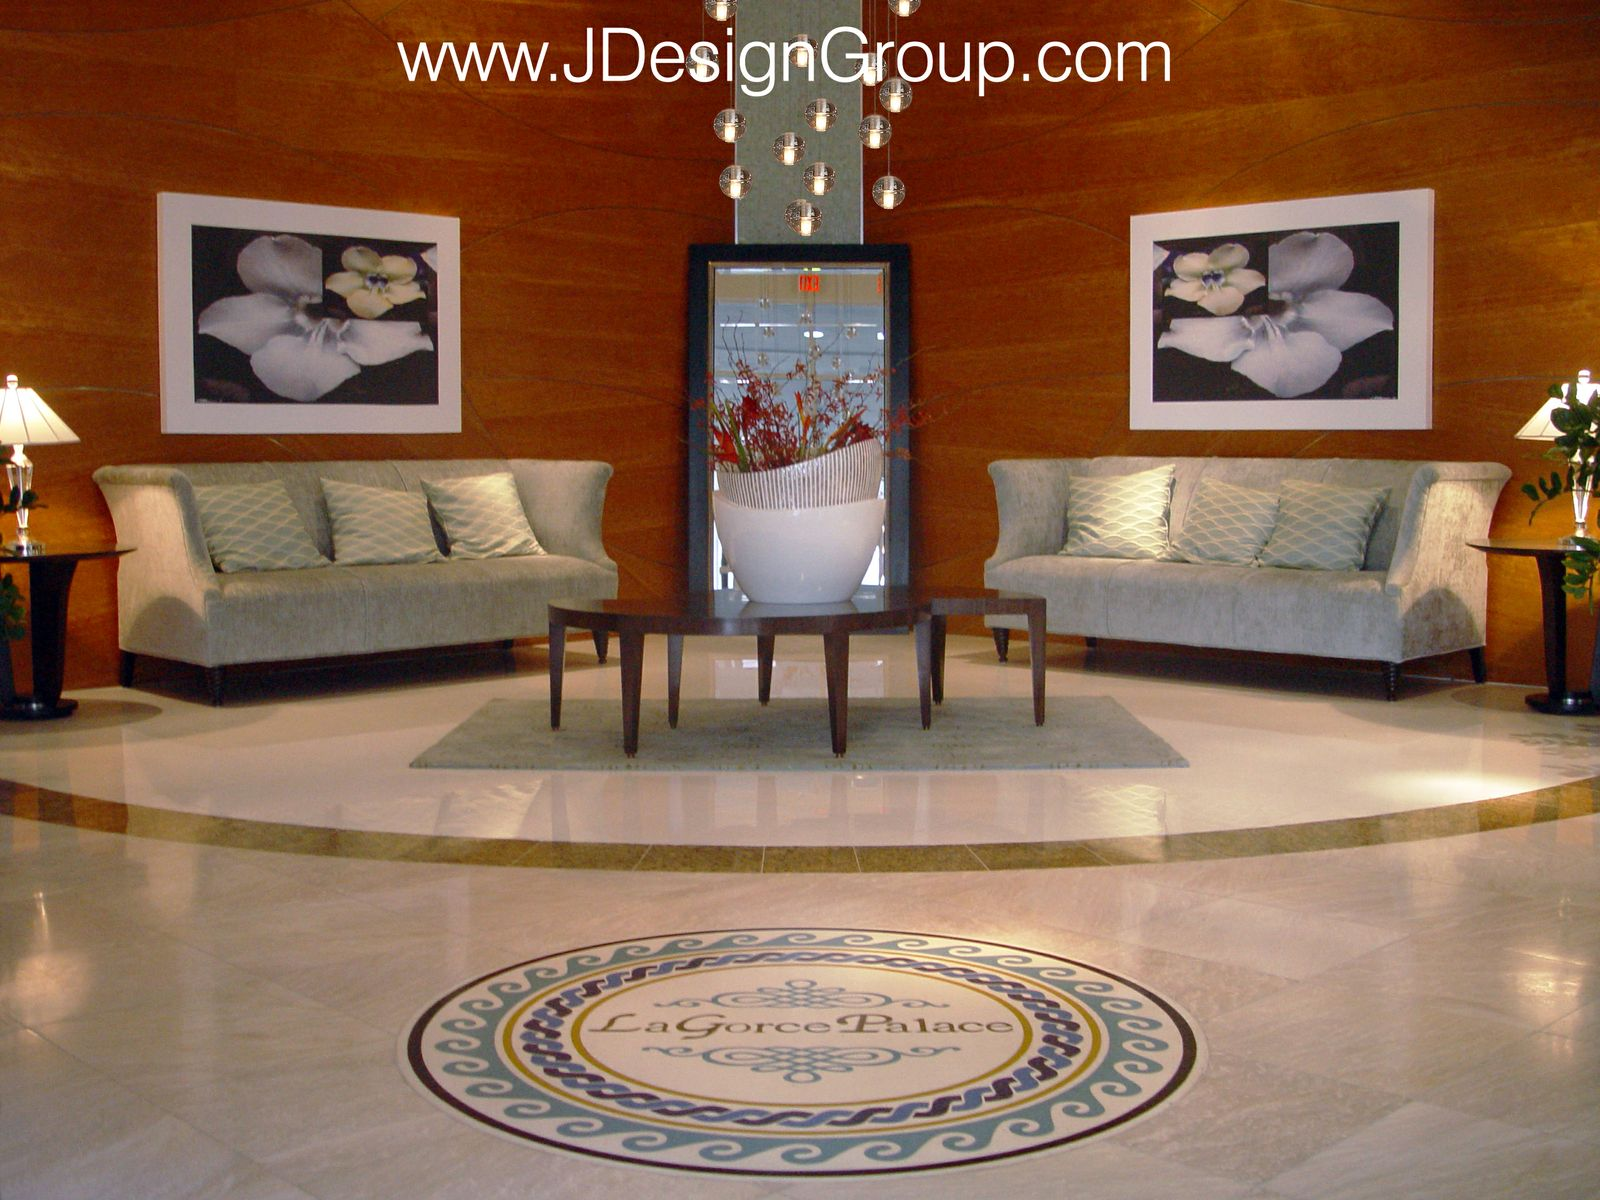 La Gorce Palace Entrance J Design Group